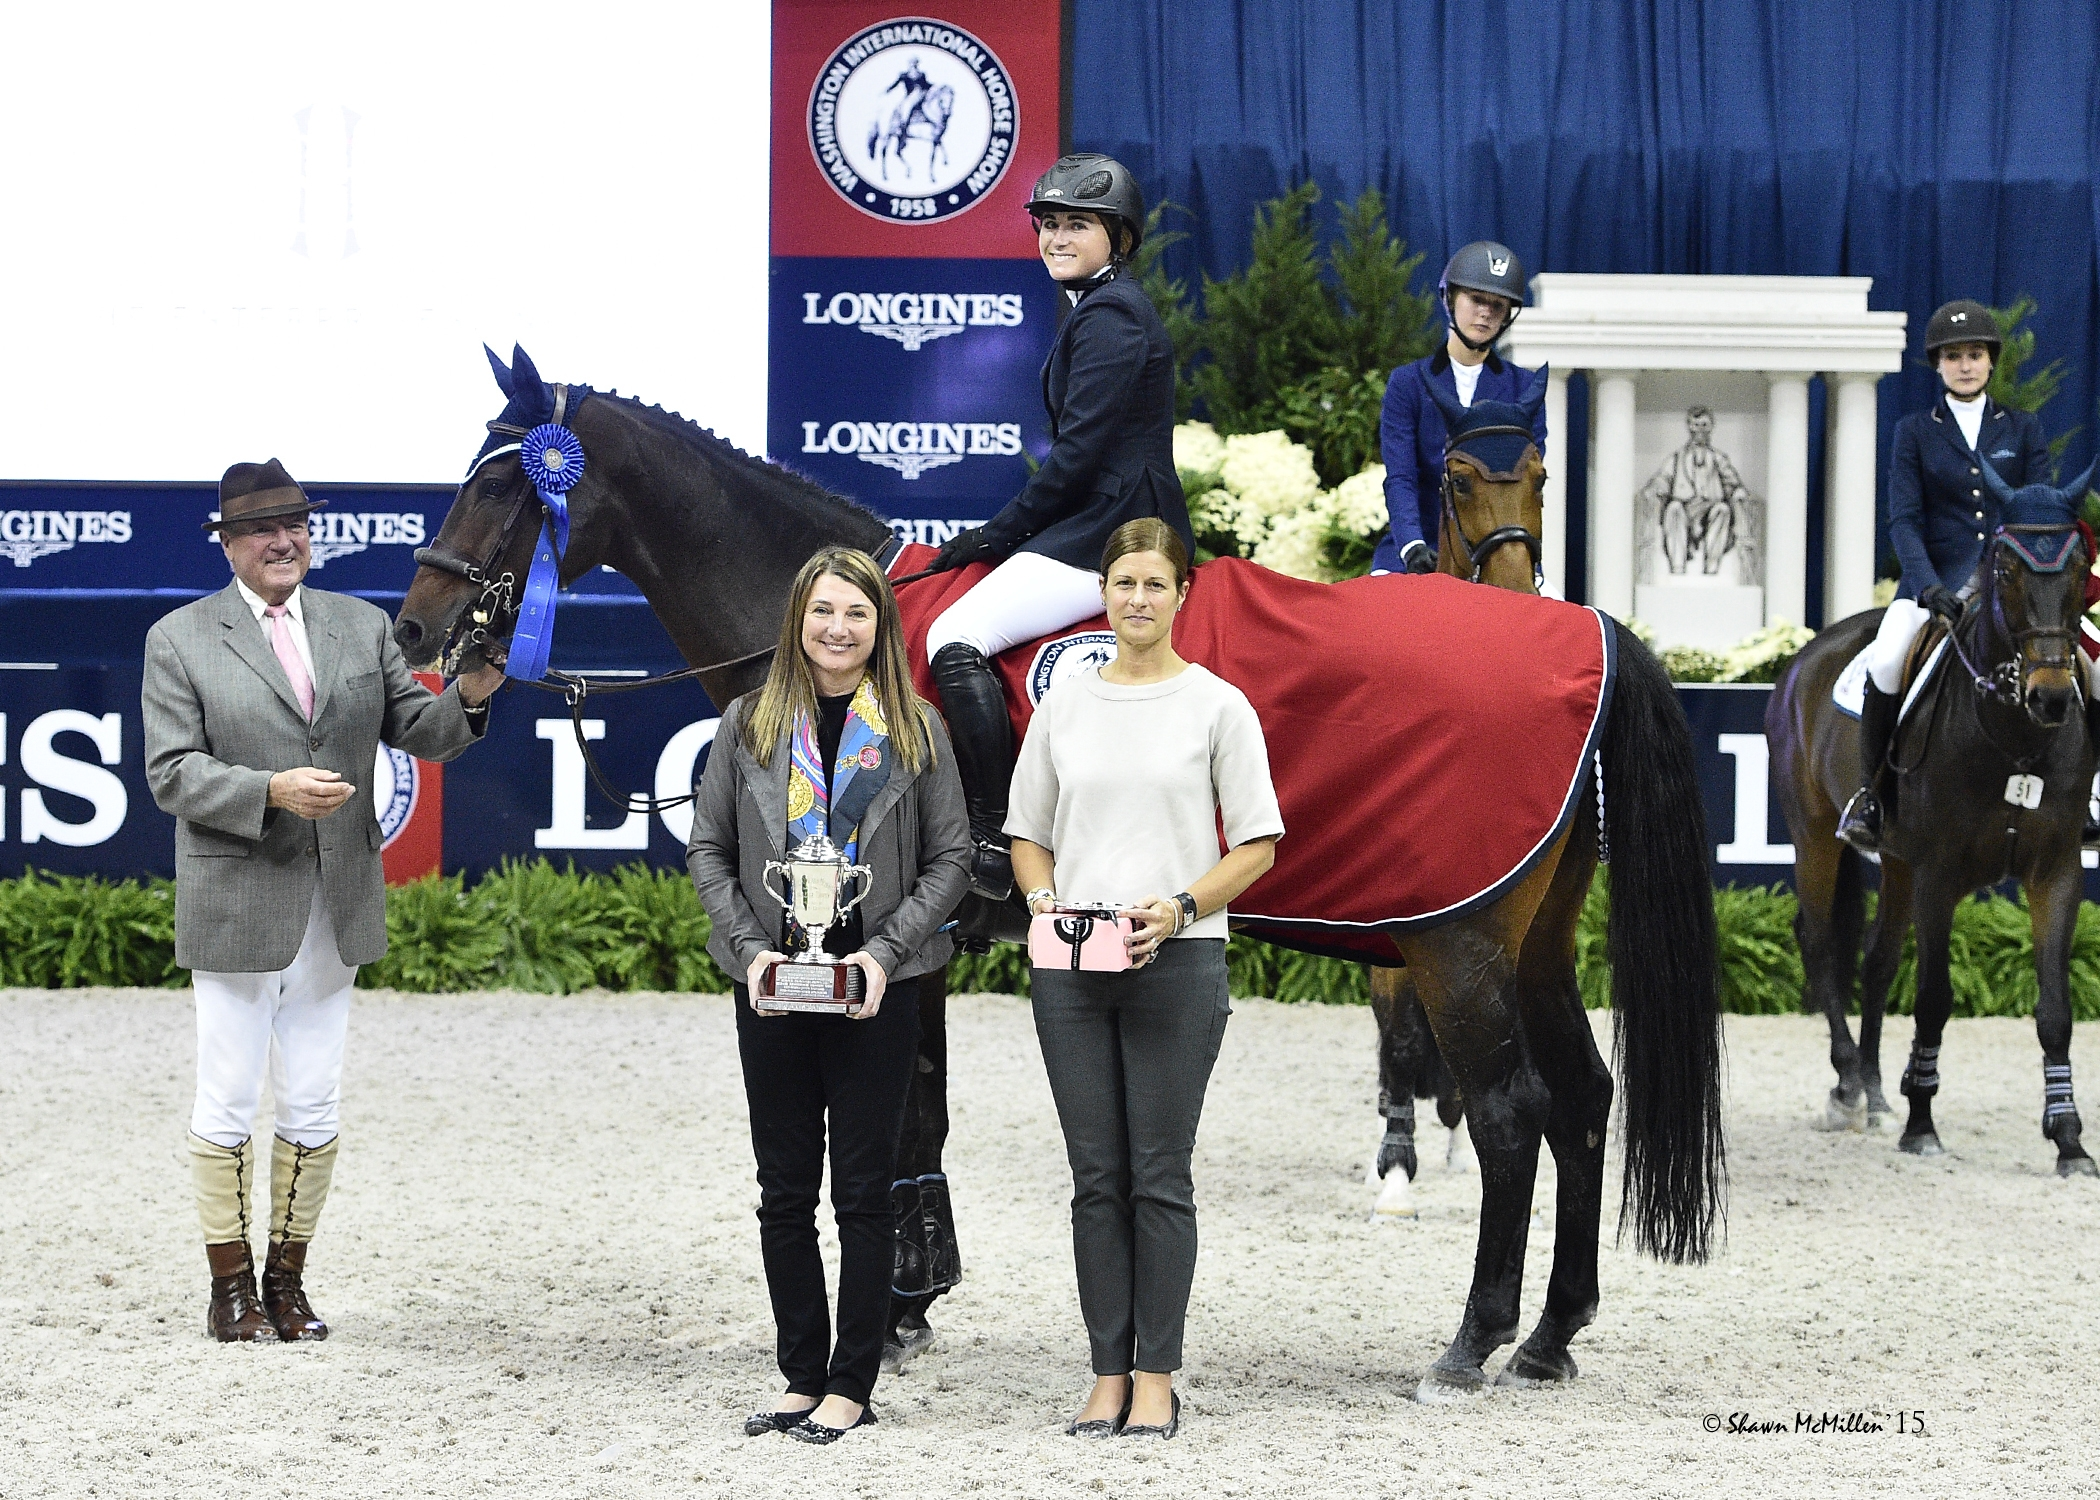 Victoria Colvin and Cafino in their winning presentation with ringmaster John Franzreb, WIHS President Victoria Lowell, and WIHS Executive Director Bridget Love Meehan. <br><b>Photo by <a href='http://www.shawnmcmillen.com/' target='_blank'>Shawn McMillen Photography</a></b>